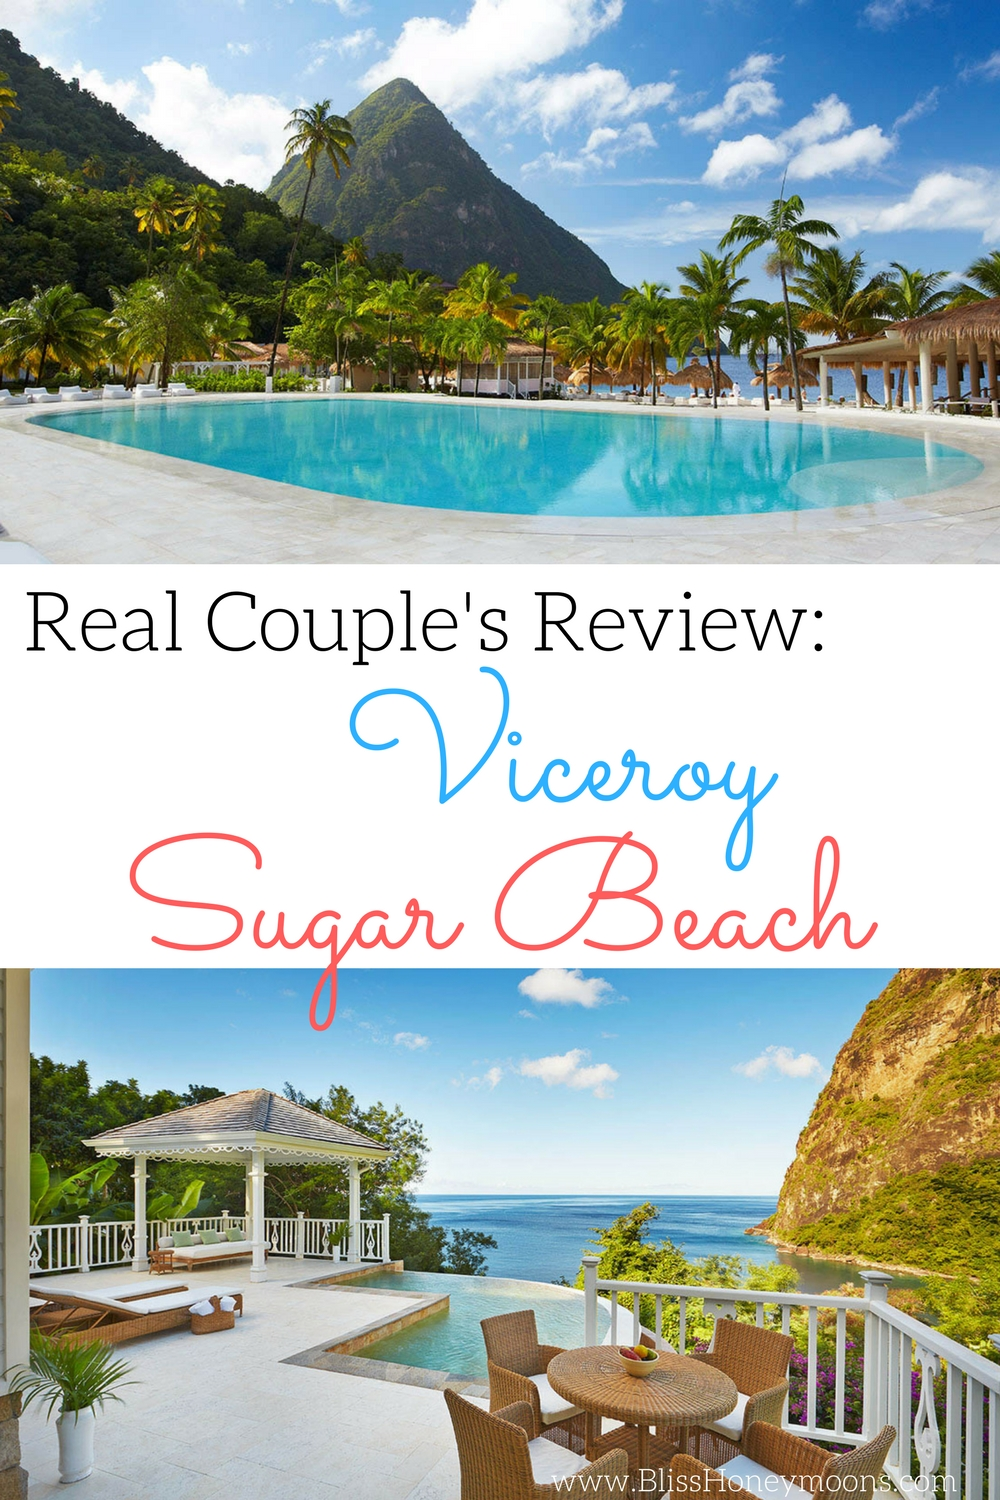 Viceroy Sugar Beach review, Sugar Beach review, honeymoon at Sugar Beach, honeymoon ideas, romantic honeymoon ideas, destination honeymoon ideas, Bliss Honeymoons review, perfect honeymoon ideas, best honeymoon ideas